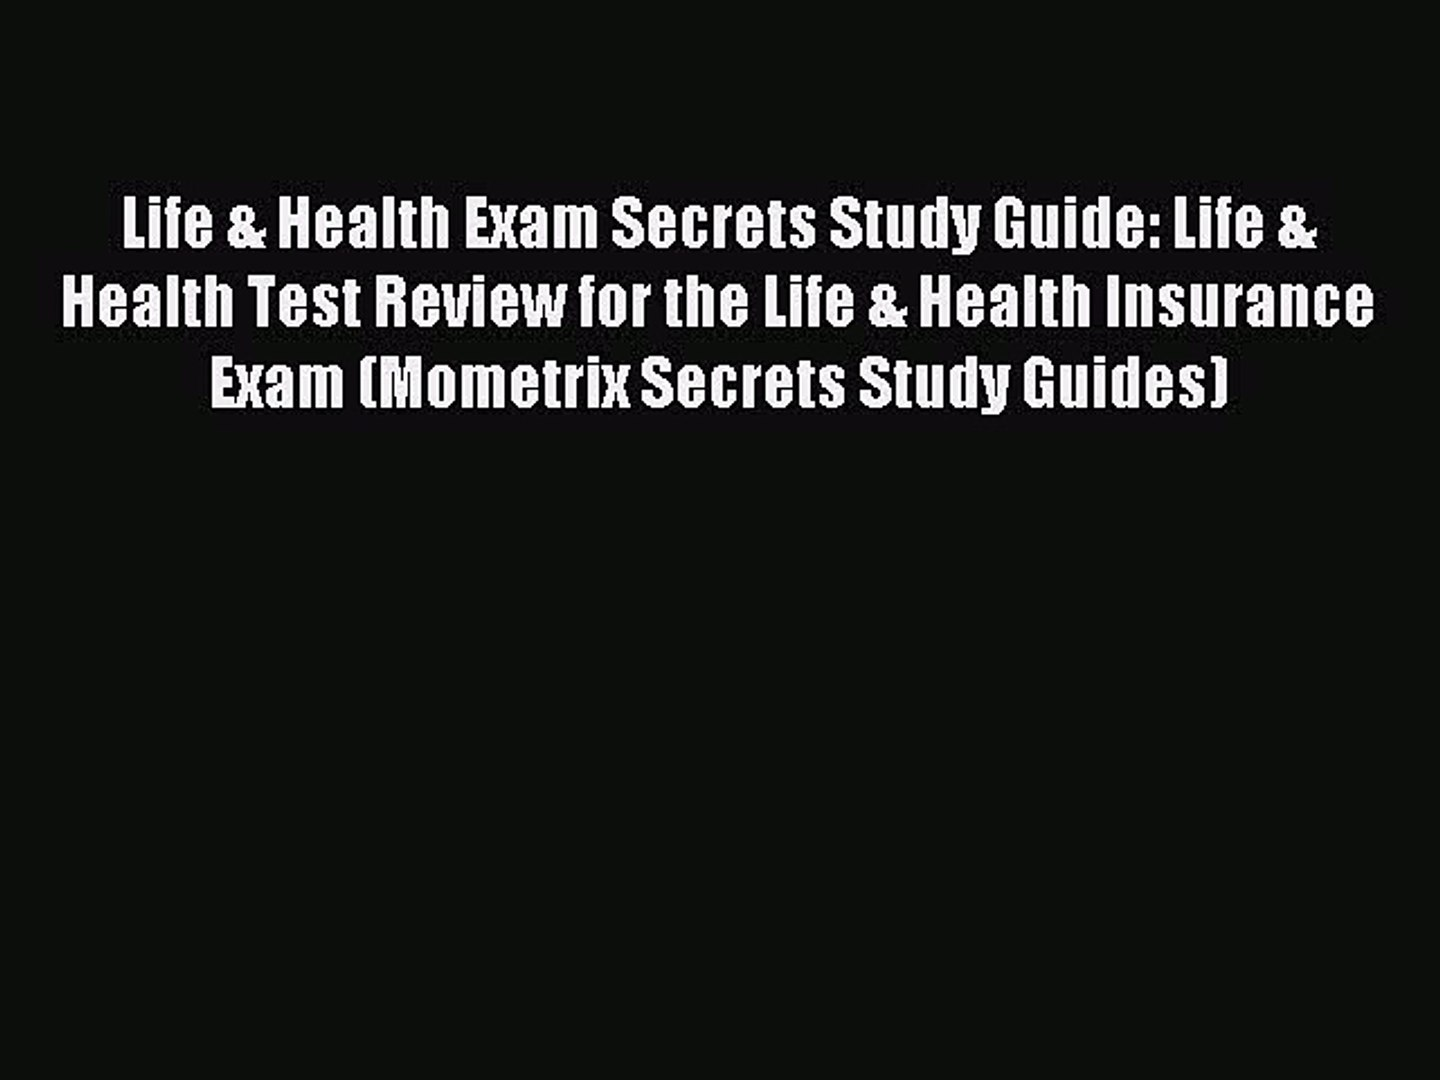 Read Life & Health Exam Secrets Study Guide: Life & Health Test Review for the Life & He